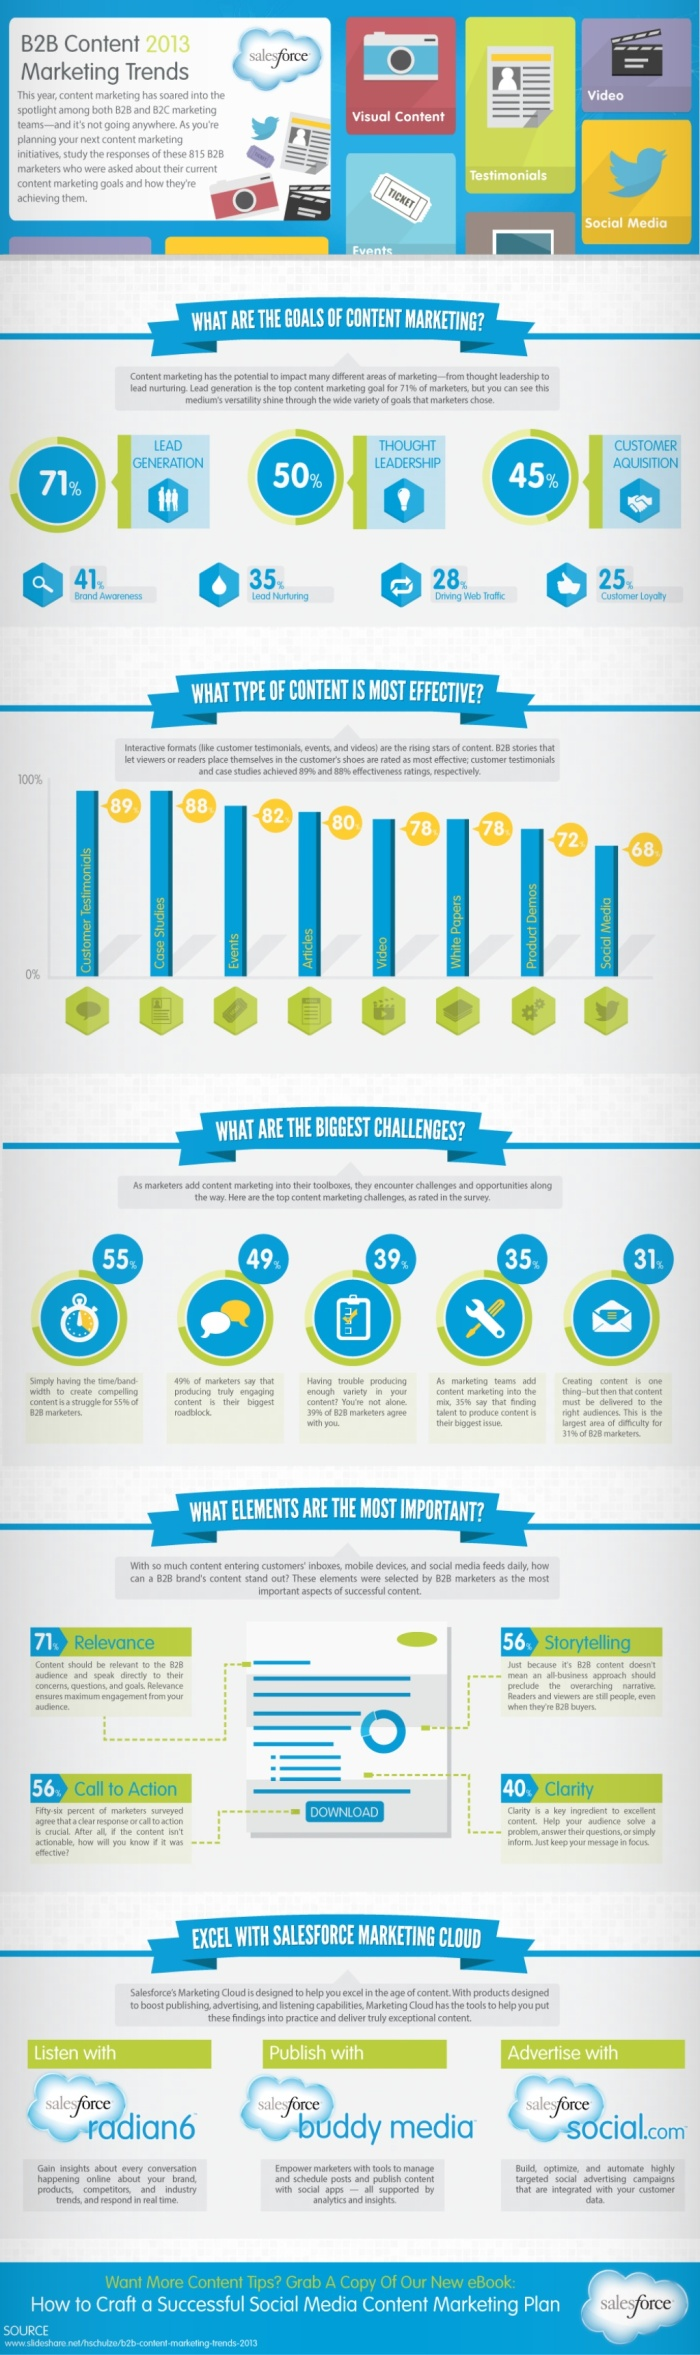 B2B Content Marketing Trends 2013 Infographic